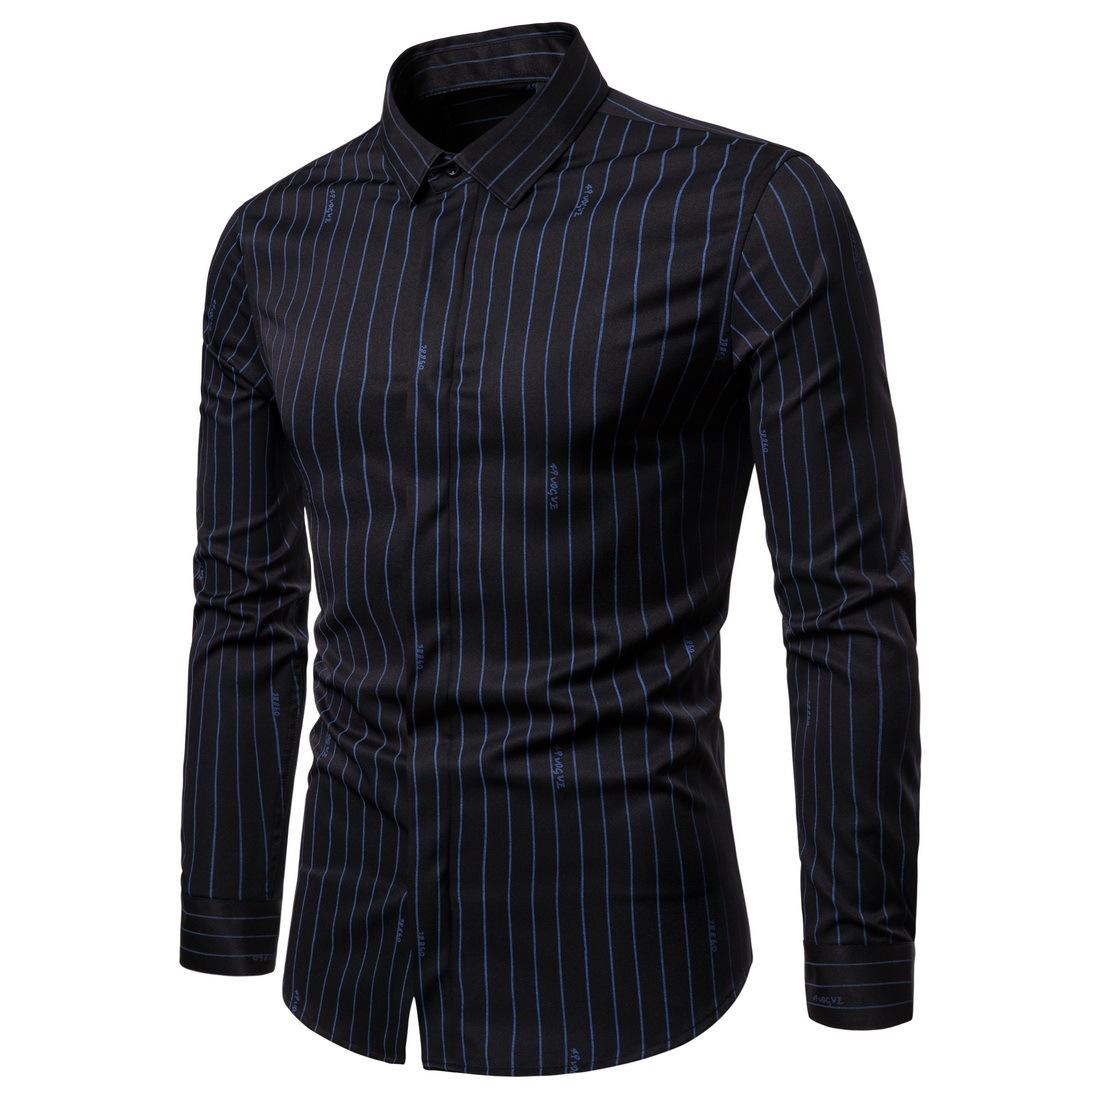 European Size New Men Shirt Long-sleeved Shirt Solid British Trend Striped Large Size Stretch Shirt Men 3 Color S-2XL Size Free Shipping